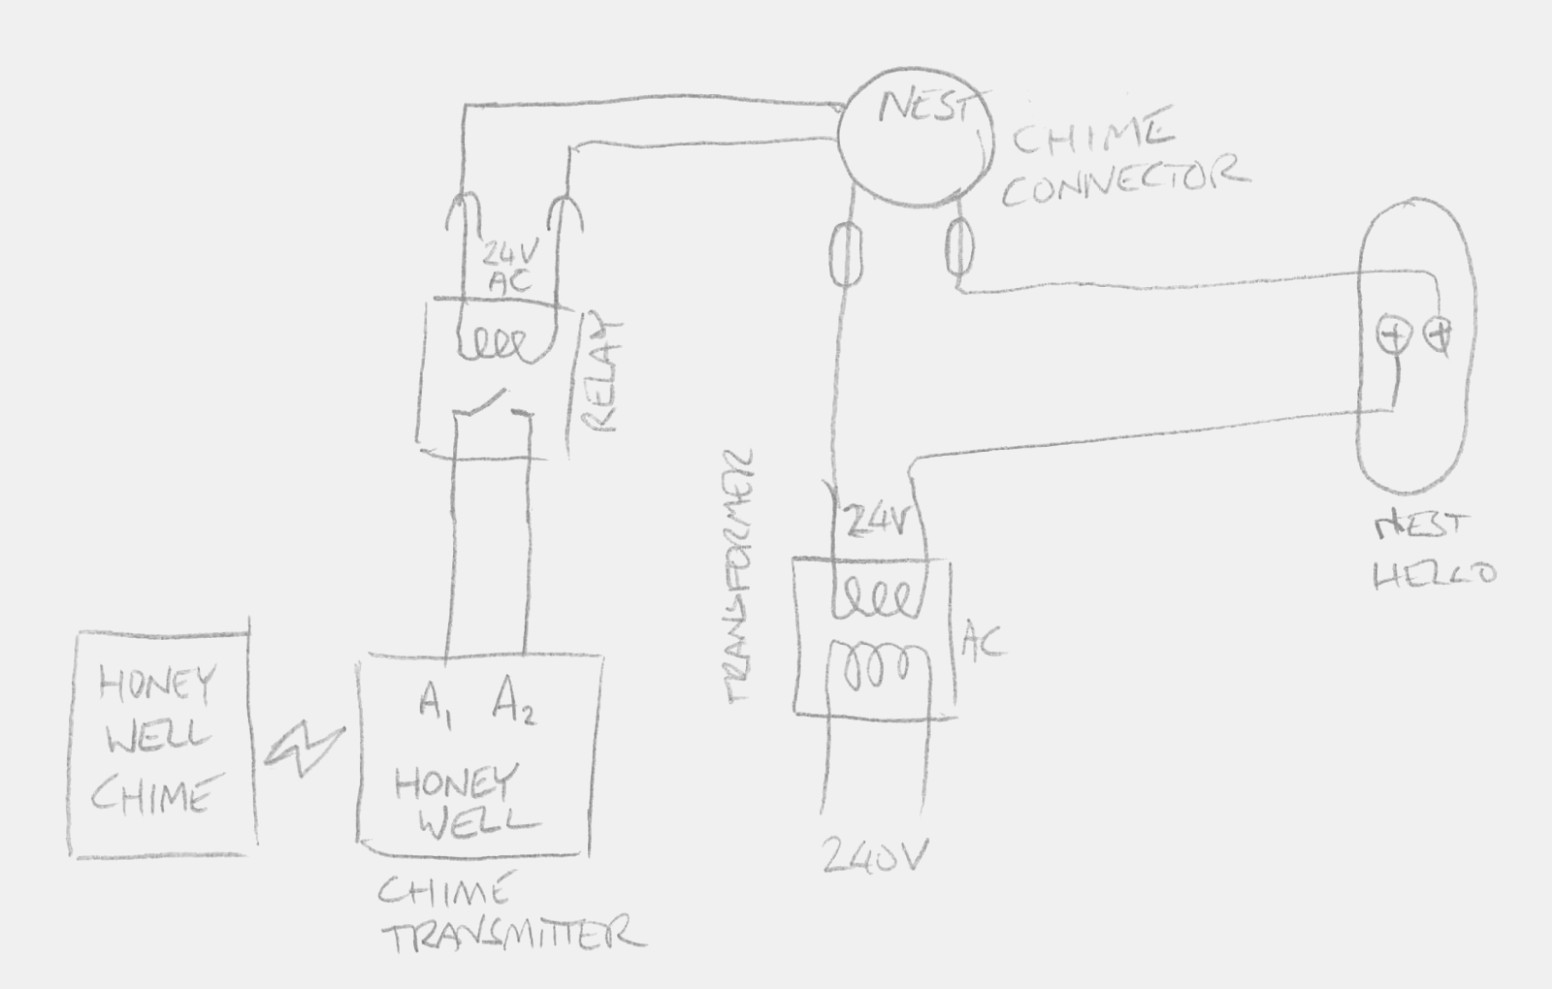 Wiring Diagram For Nest Thermostat Uk | Best Wiring Library - Nest Wiring Diagram Uk